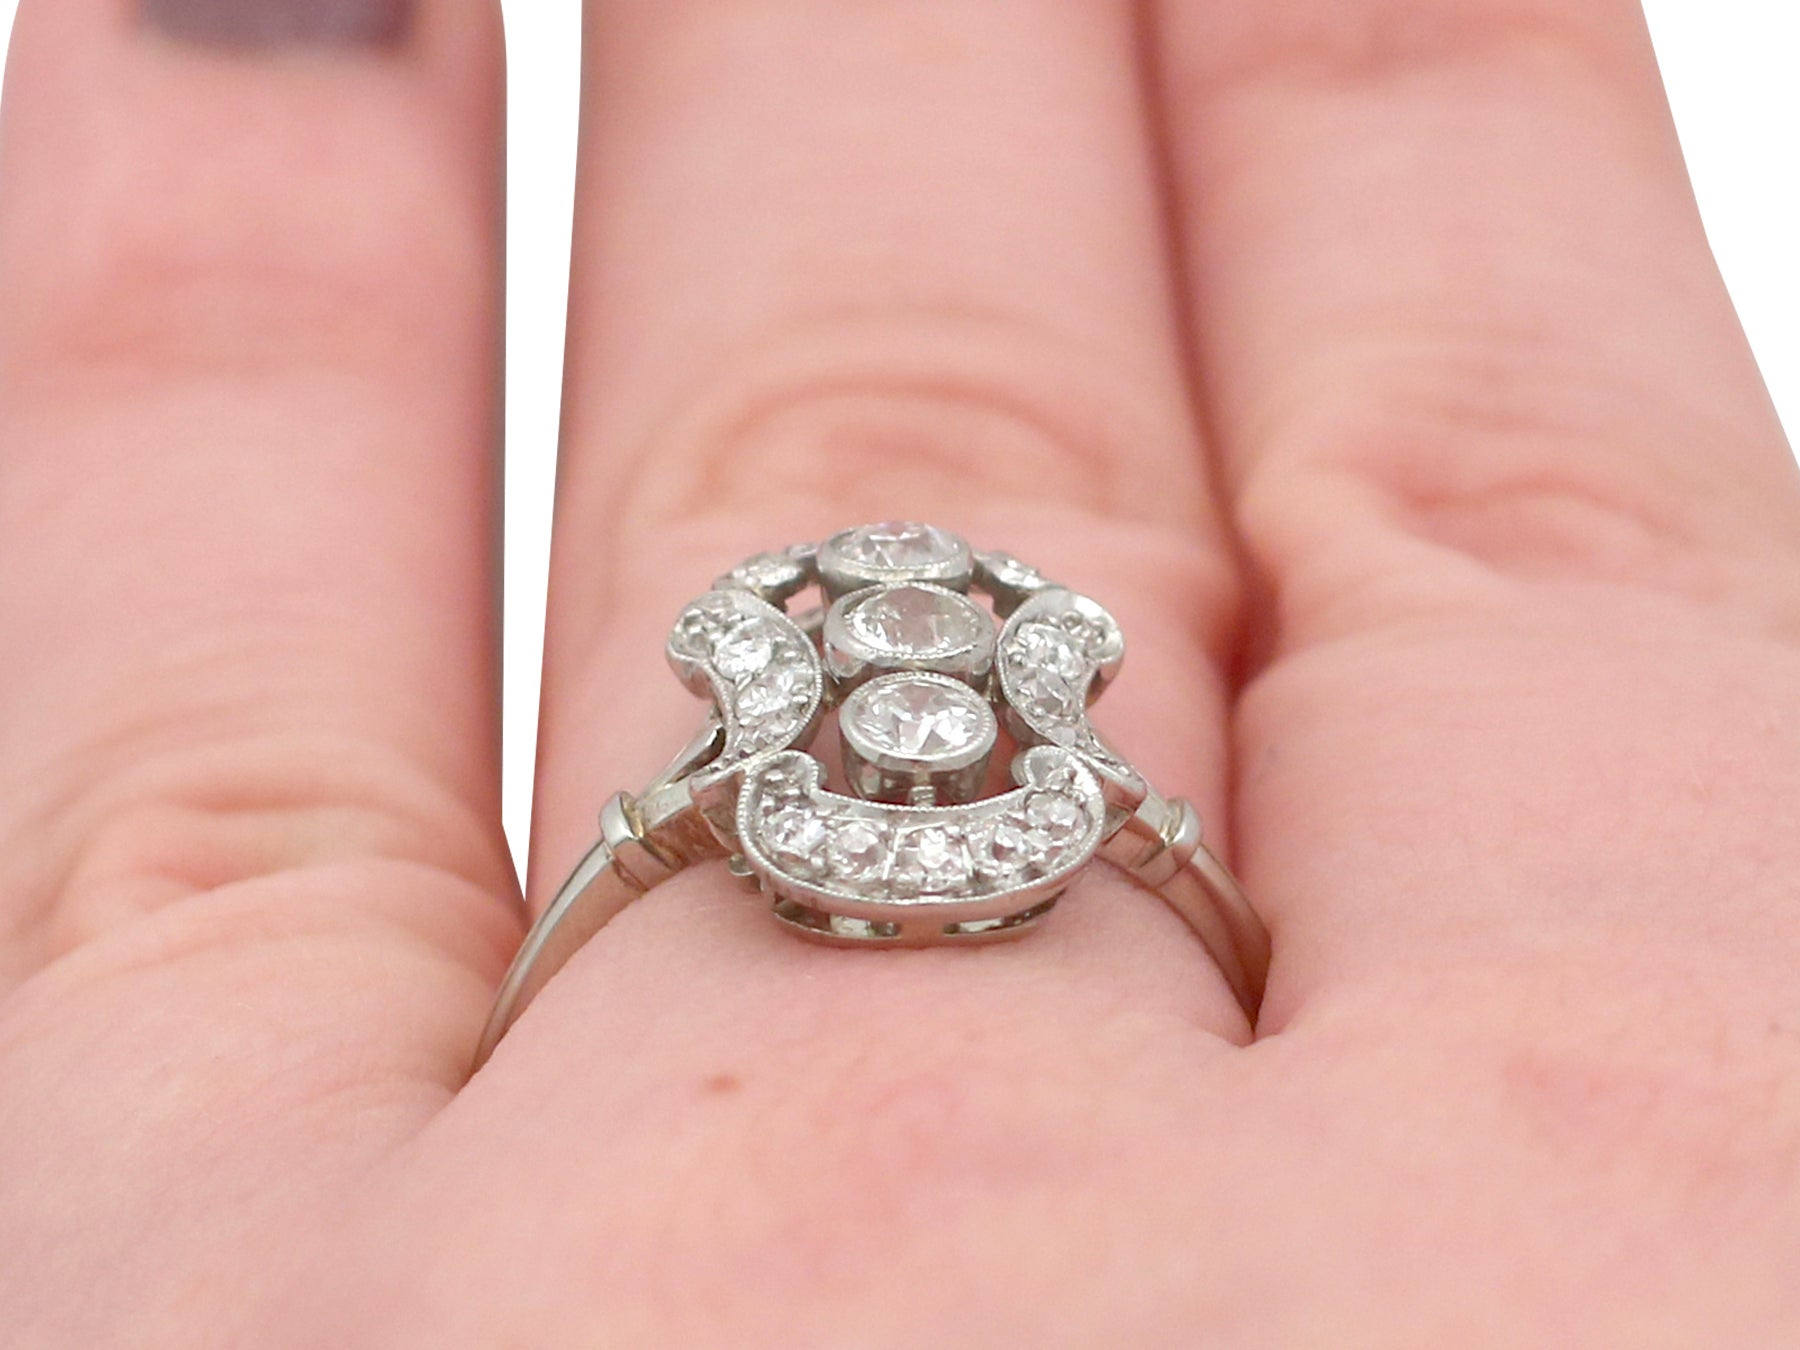 1920s Diamond 14 Karat White Gold Dress Ring For Sale at 1stdibs